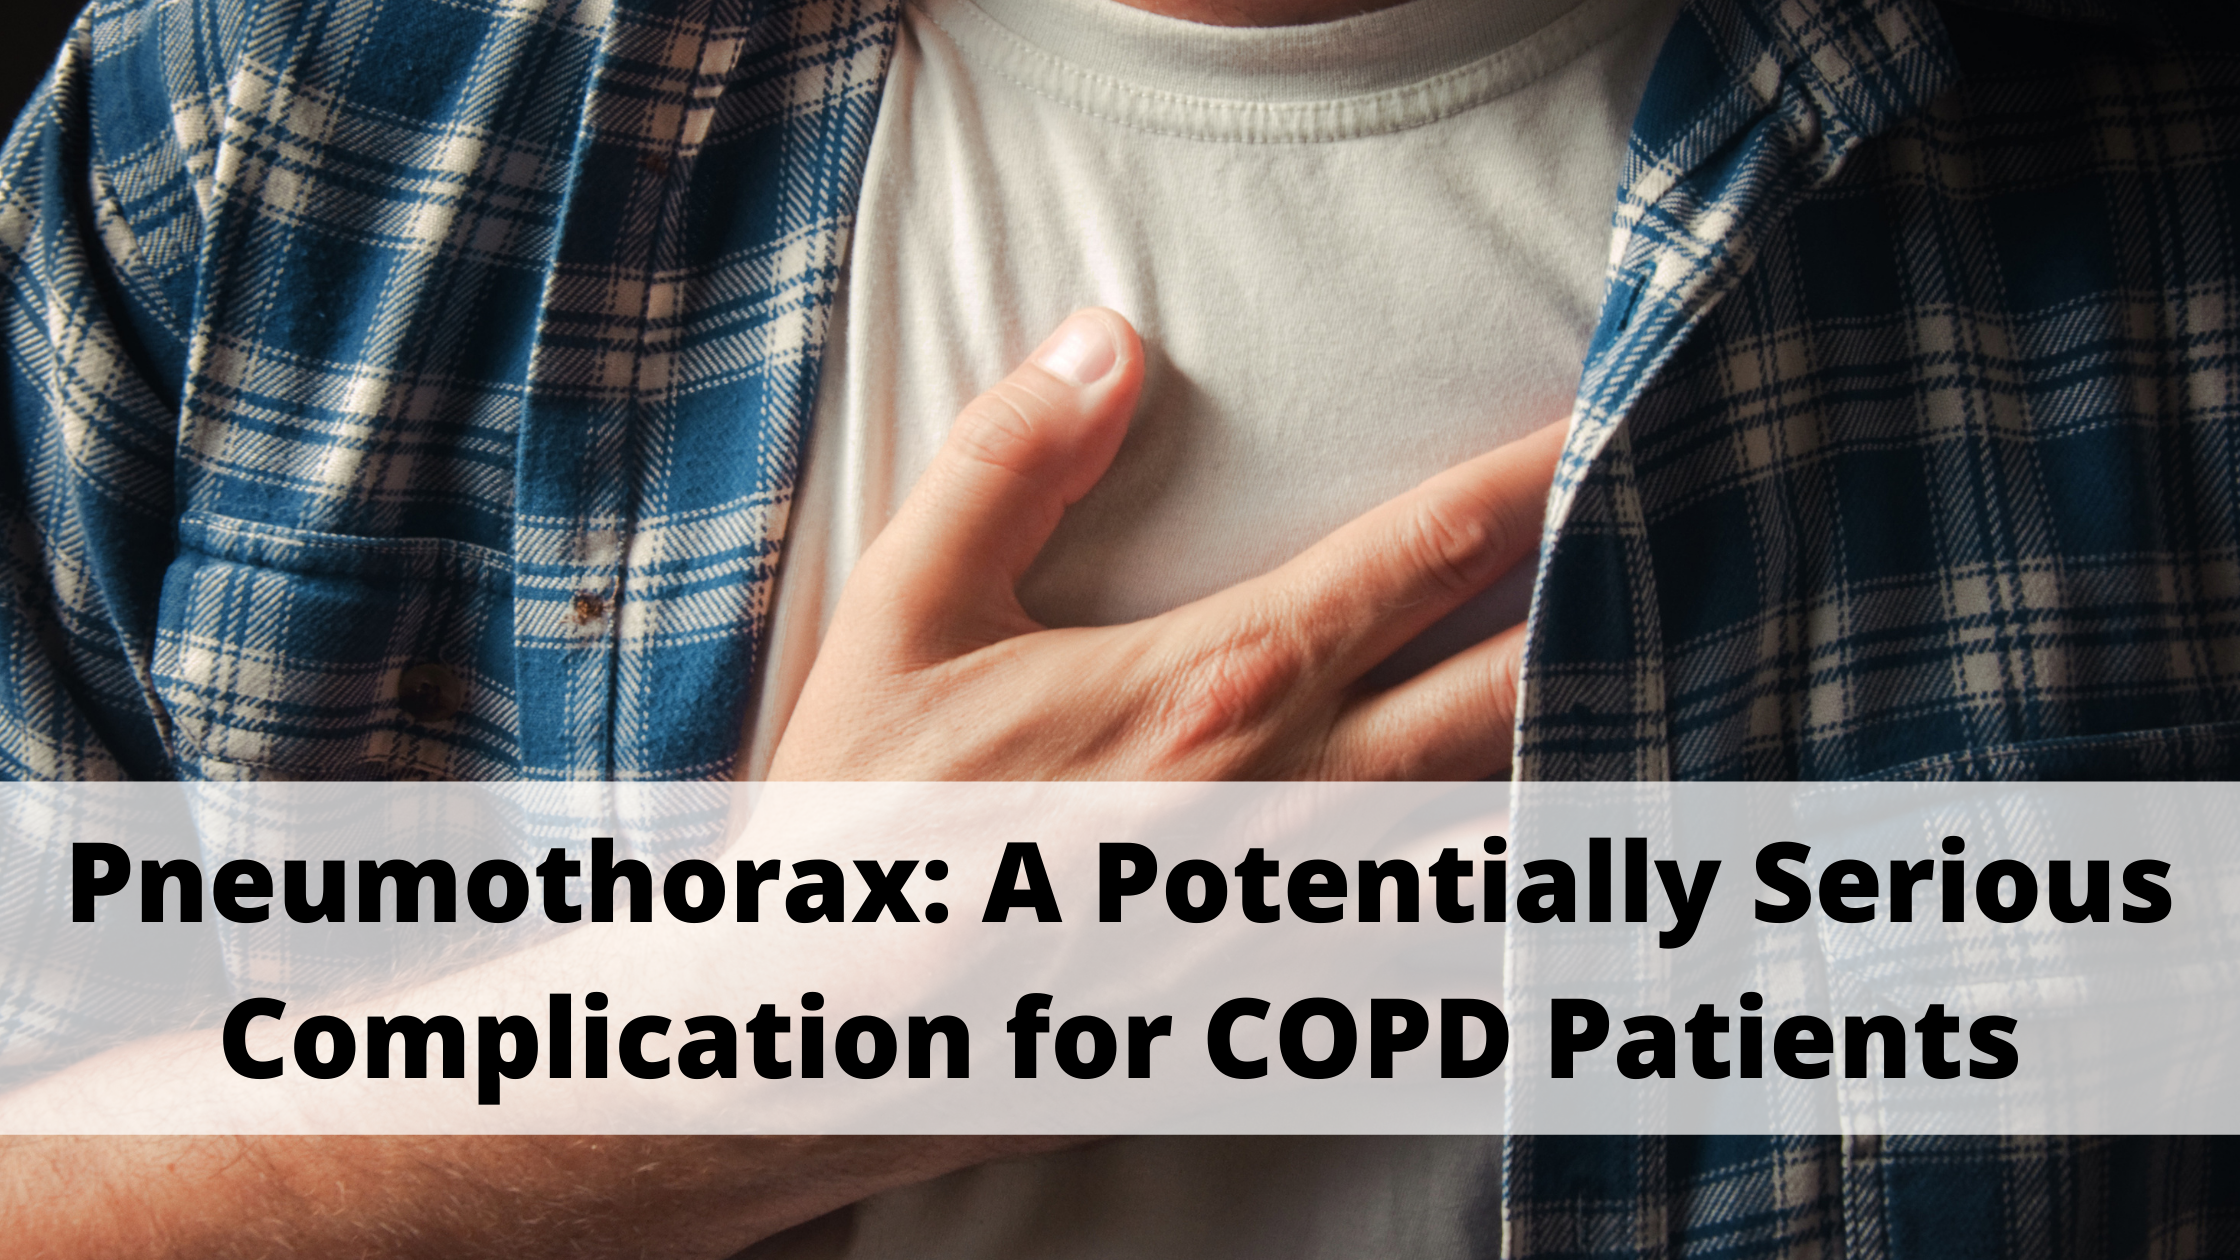 Pneumothorax: A Potentially Serious Complication for COPD Patients